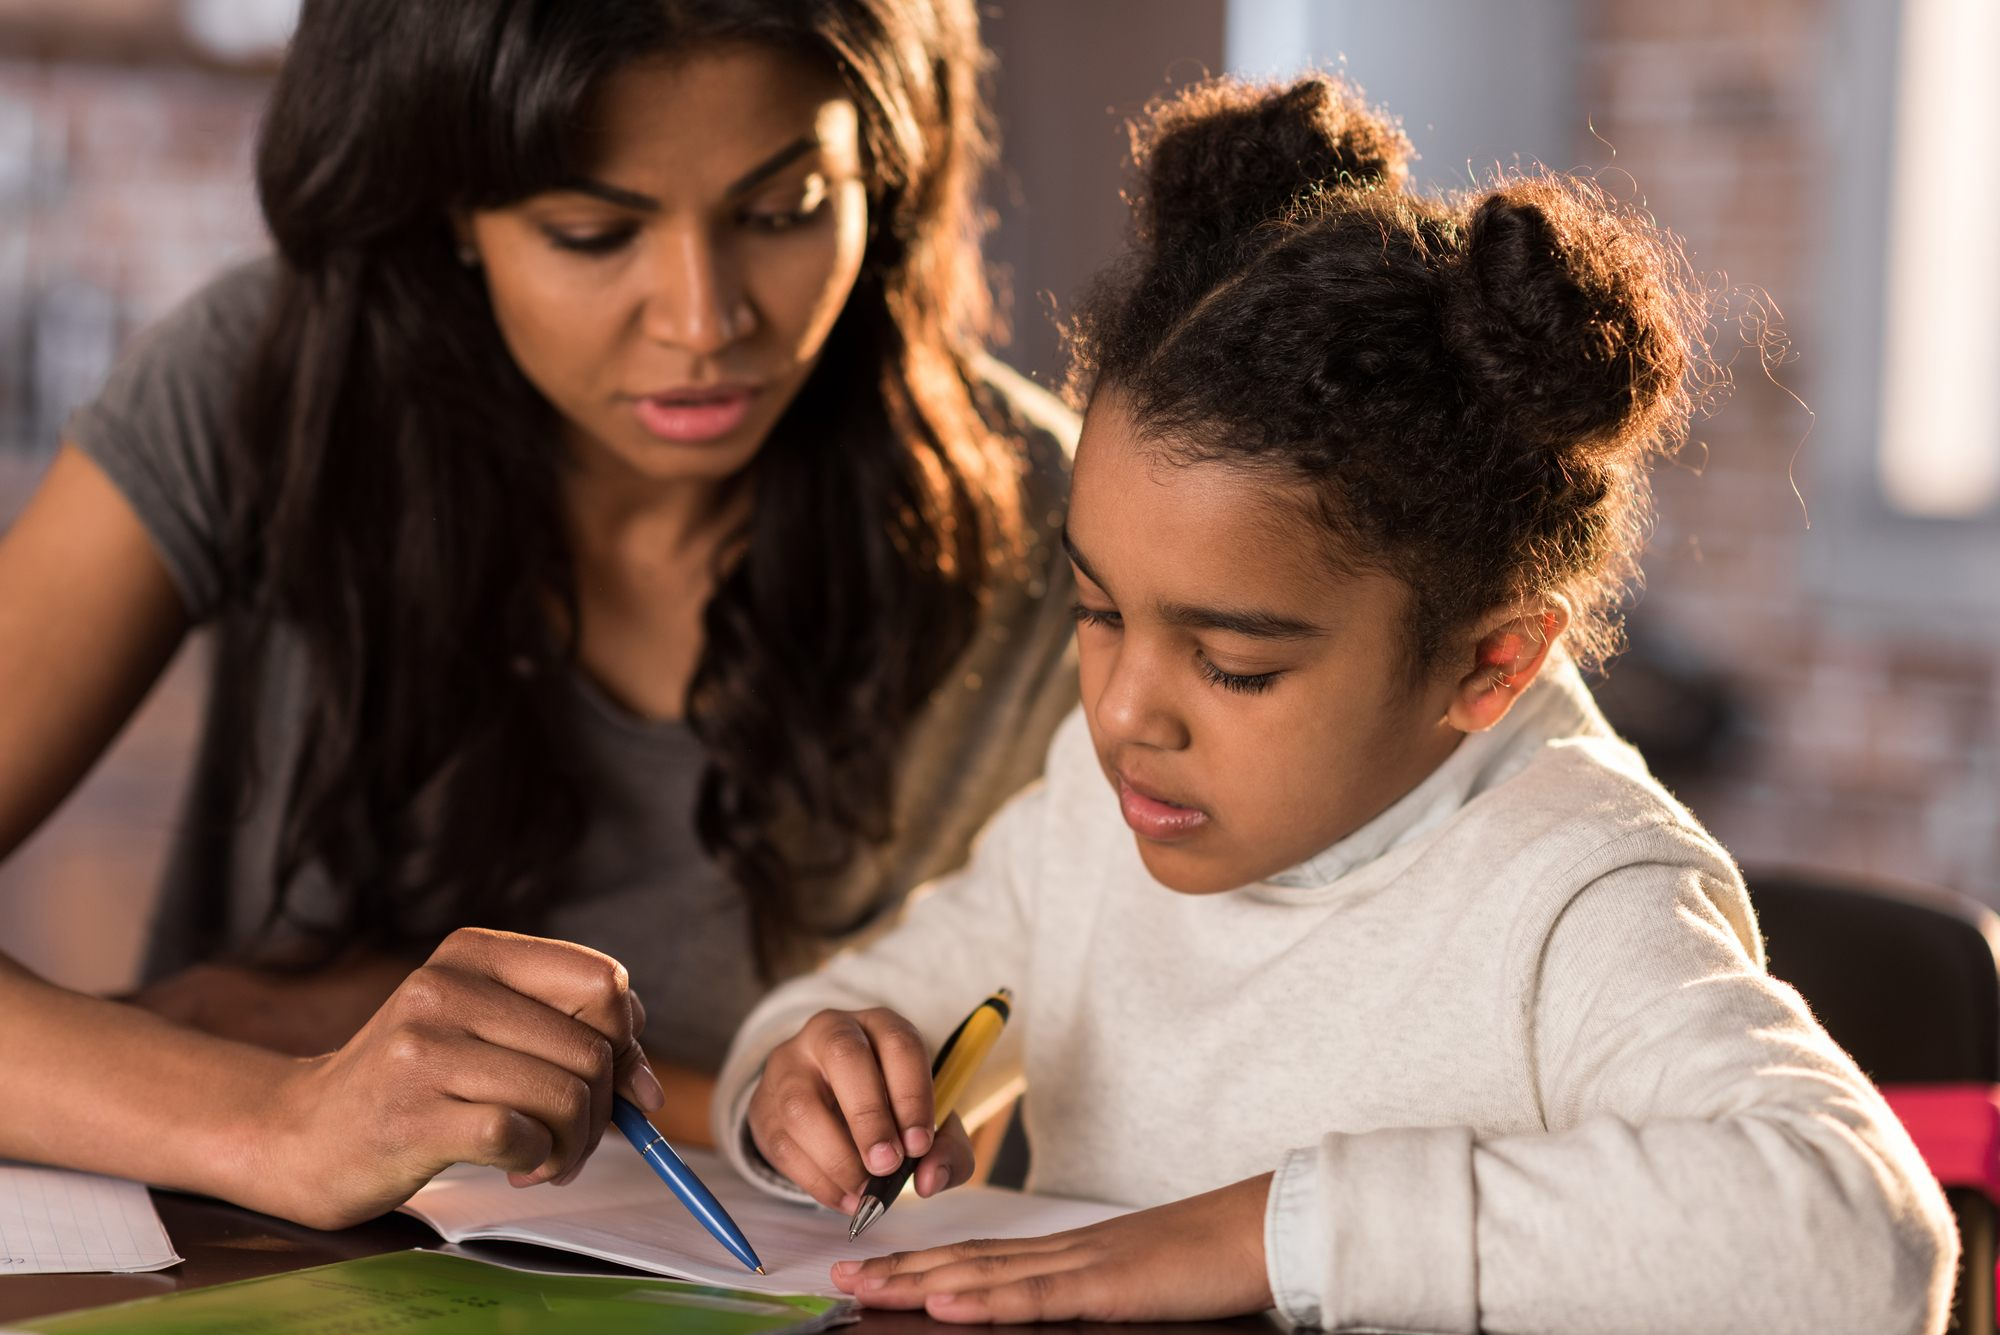 Help your tween succeed by assisting with homework as needed